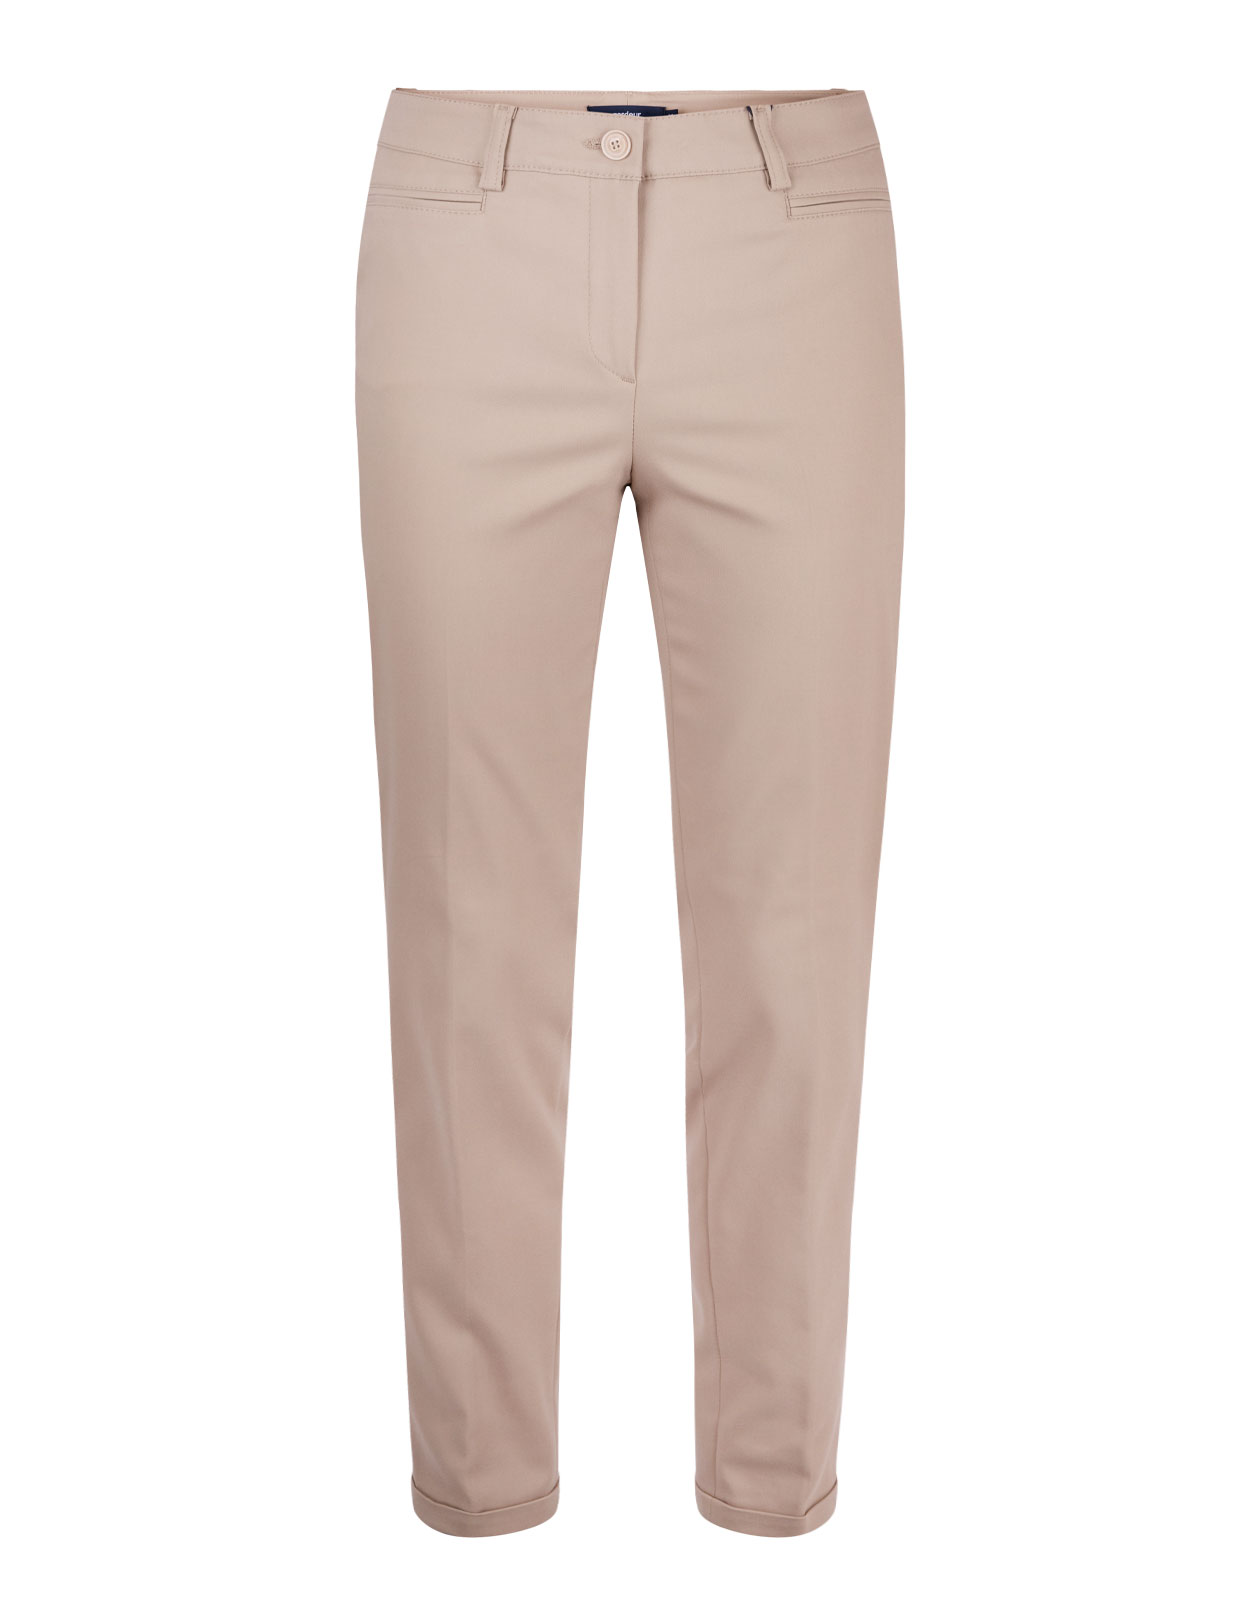 Denise trousers Sand